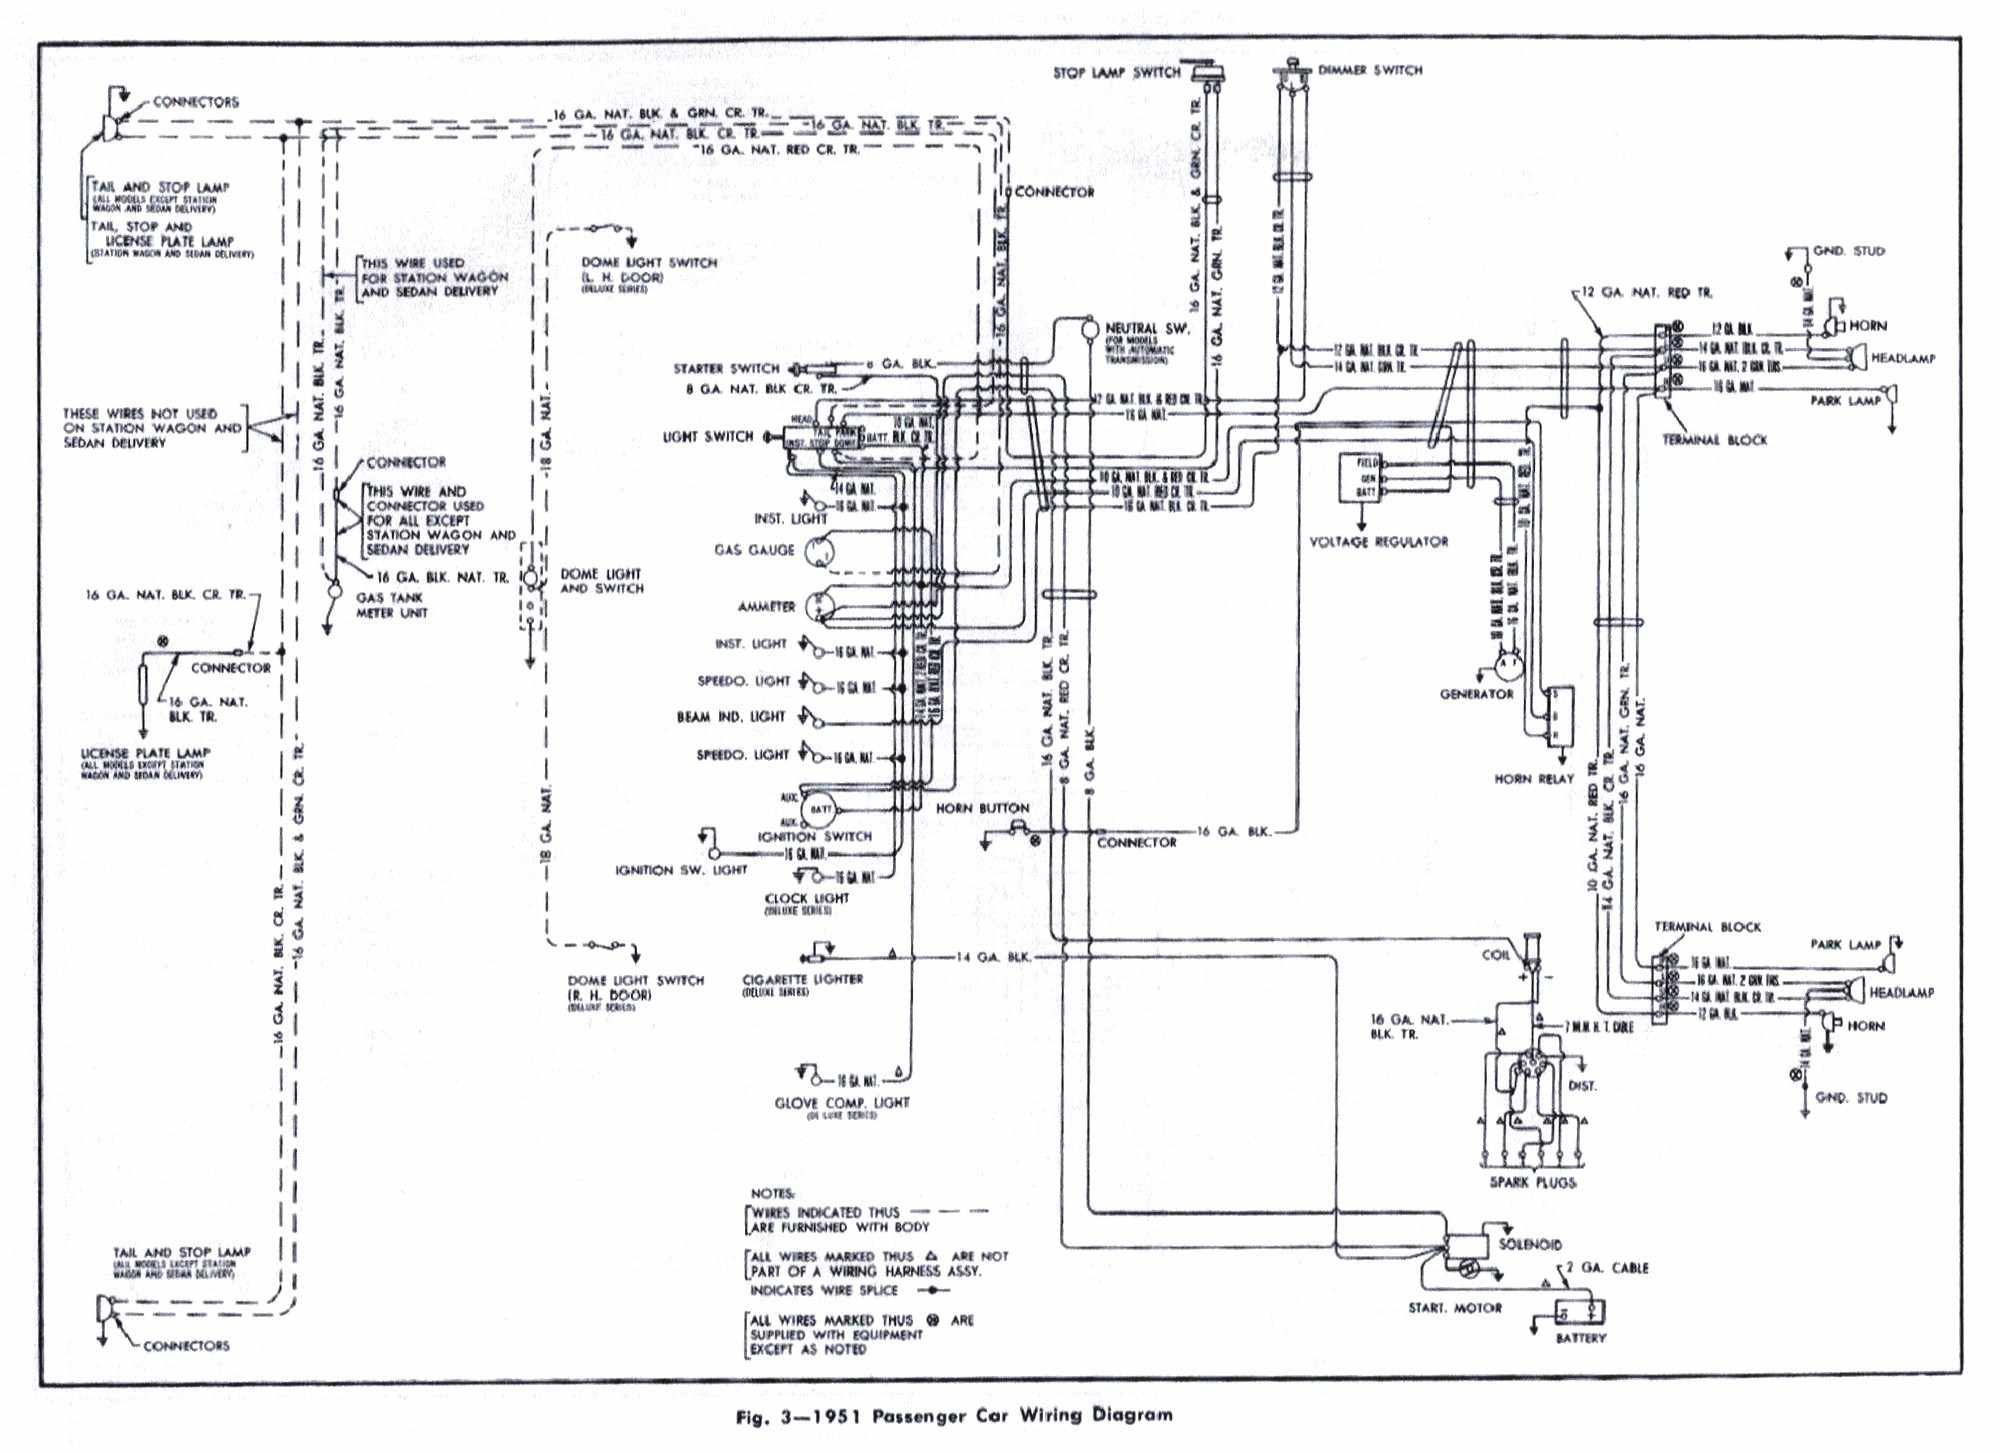 1987 S10 Blazer Wiring Diagram | Best Wiring Library - S10 Wiring Diagram Pdf